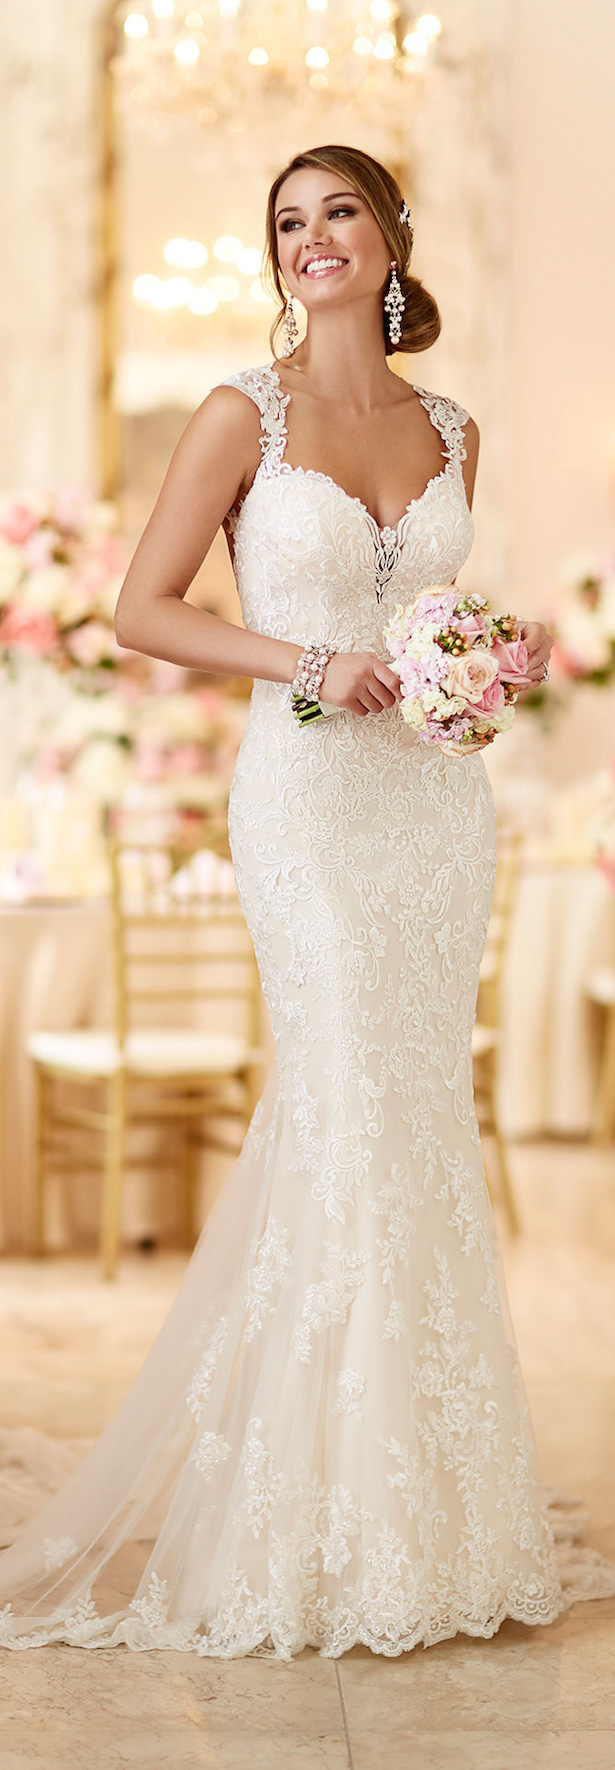 Wedding Dress Under 50